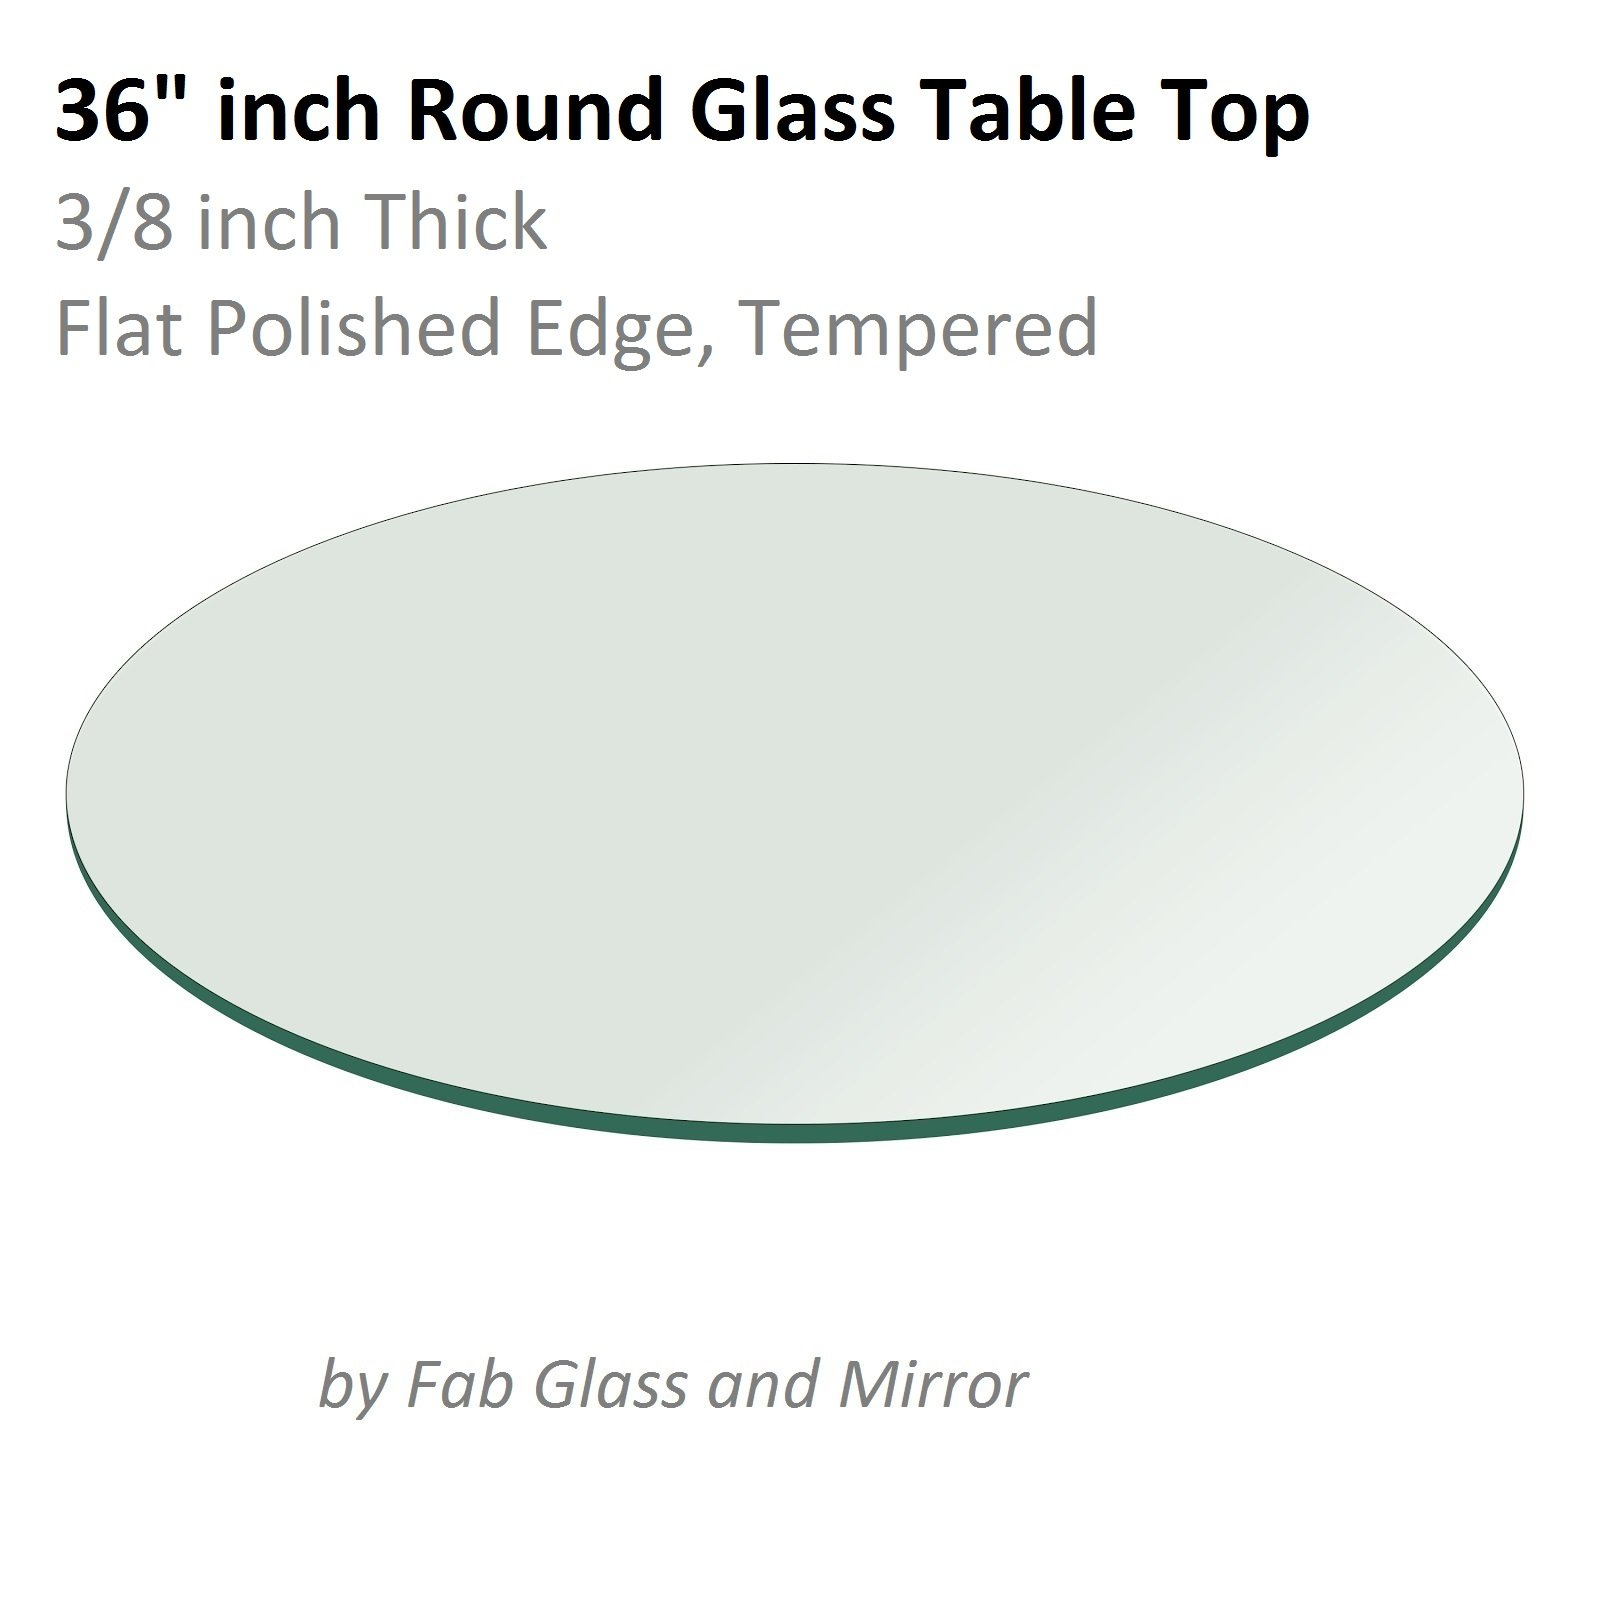 Glass Table Top: 36 inch Round 3/8 inch Thick Flat Polish Tempered